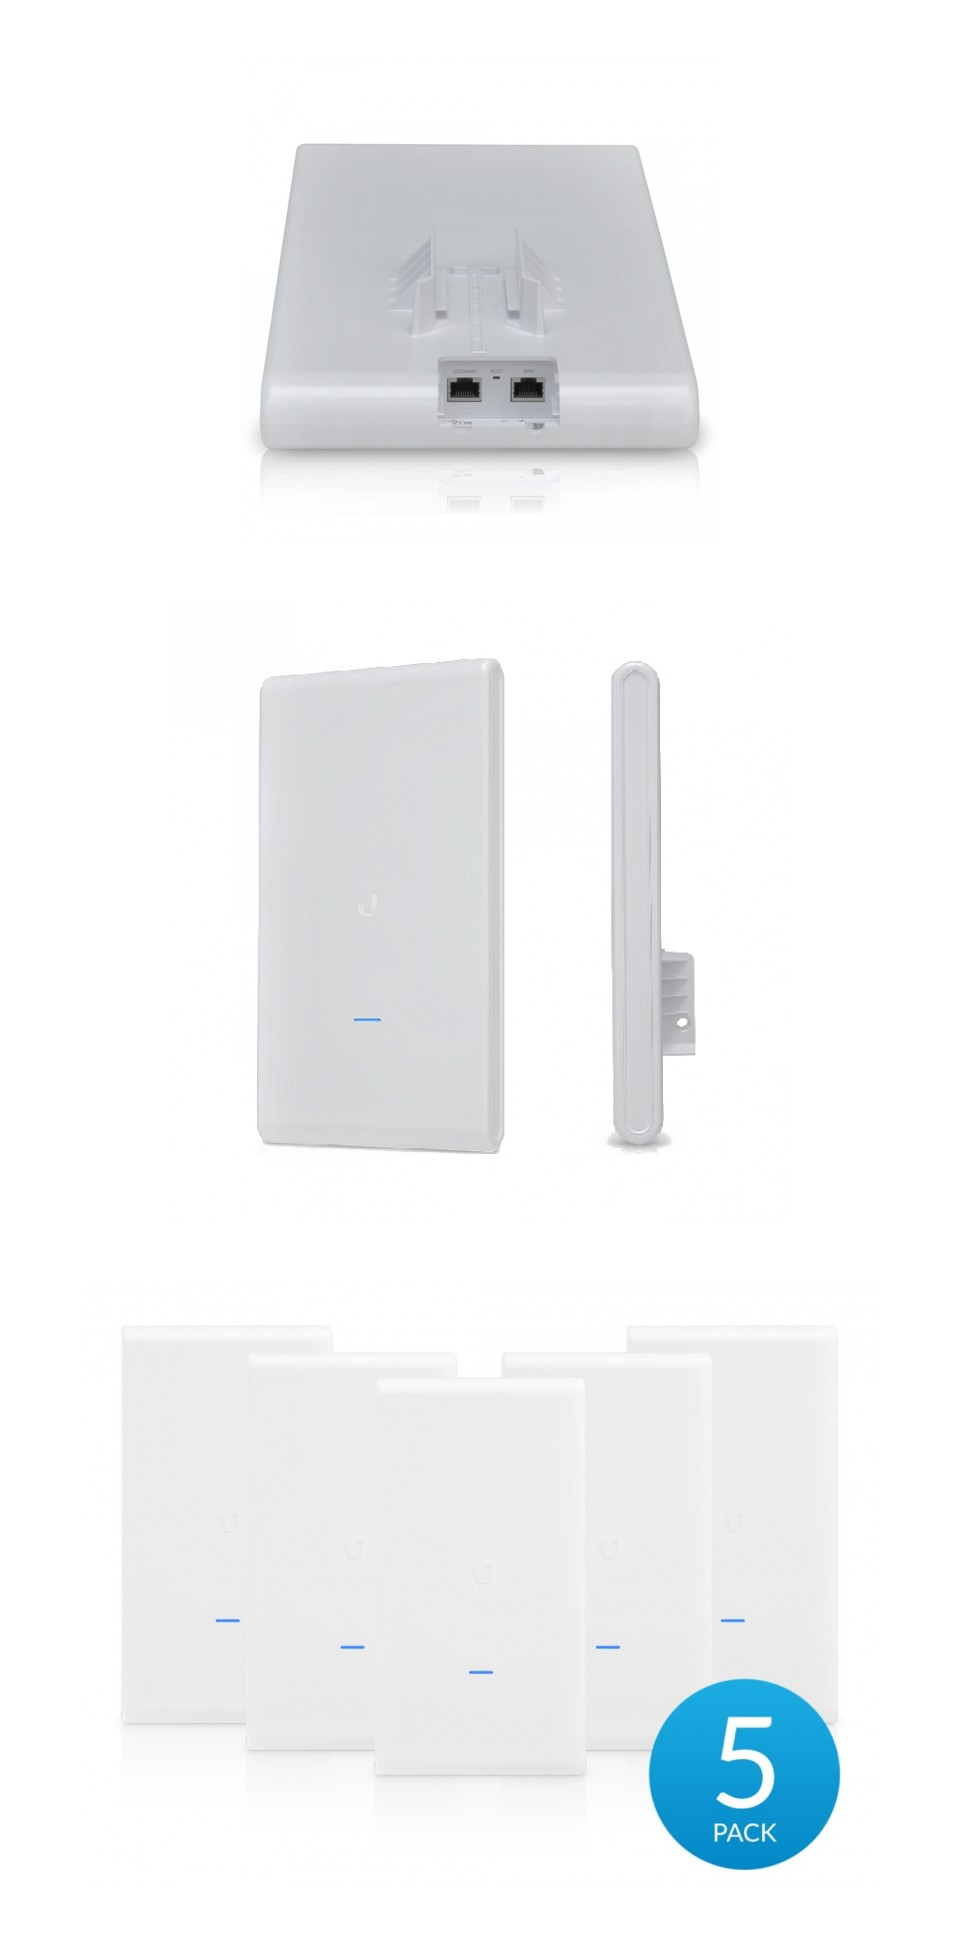 Ubiquiti UniFi Mesh Pro AC Outdoor MIMO Wi-Fi Access Point 5 Pack product